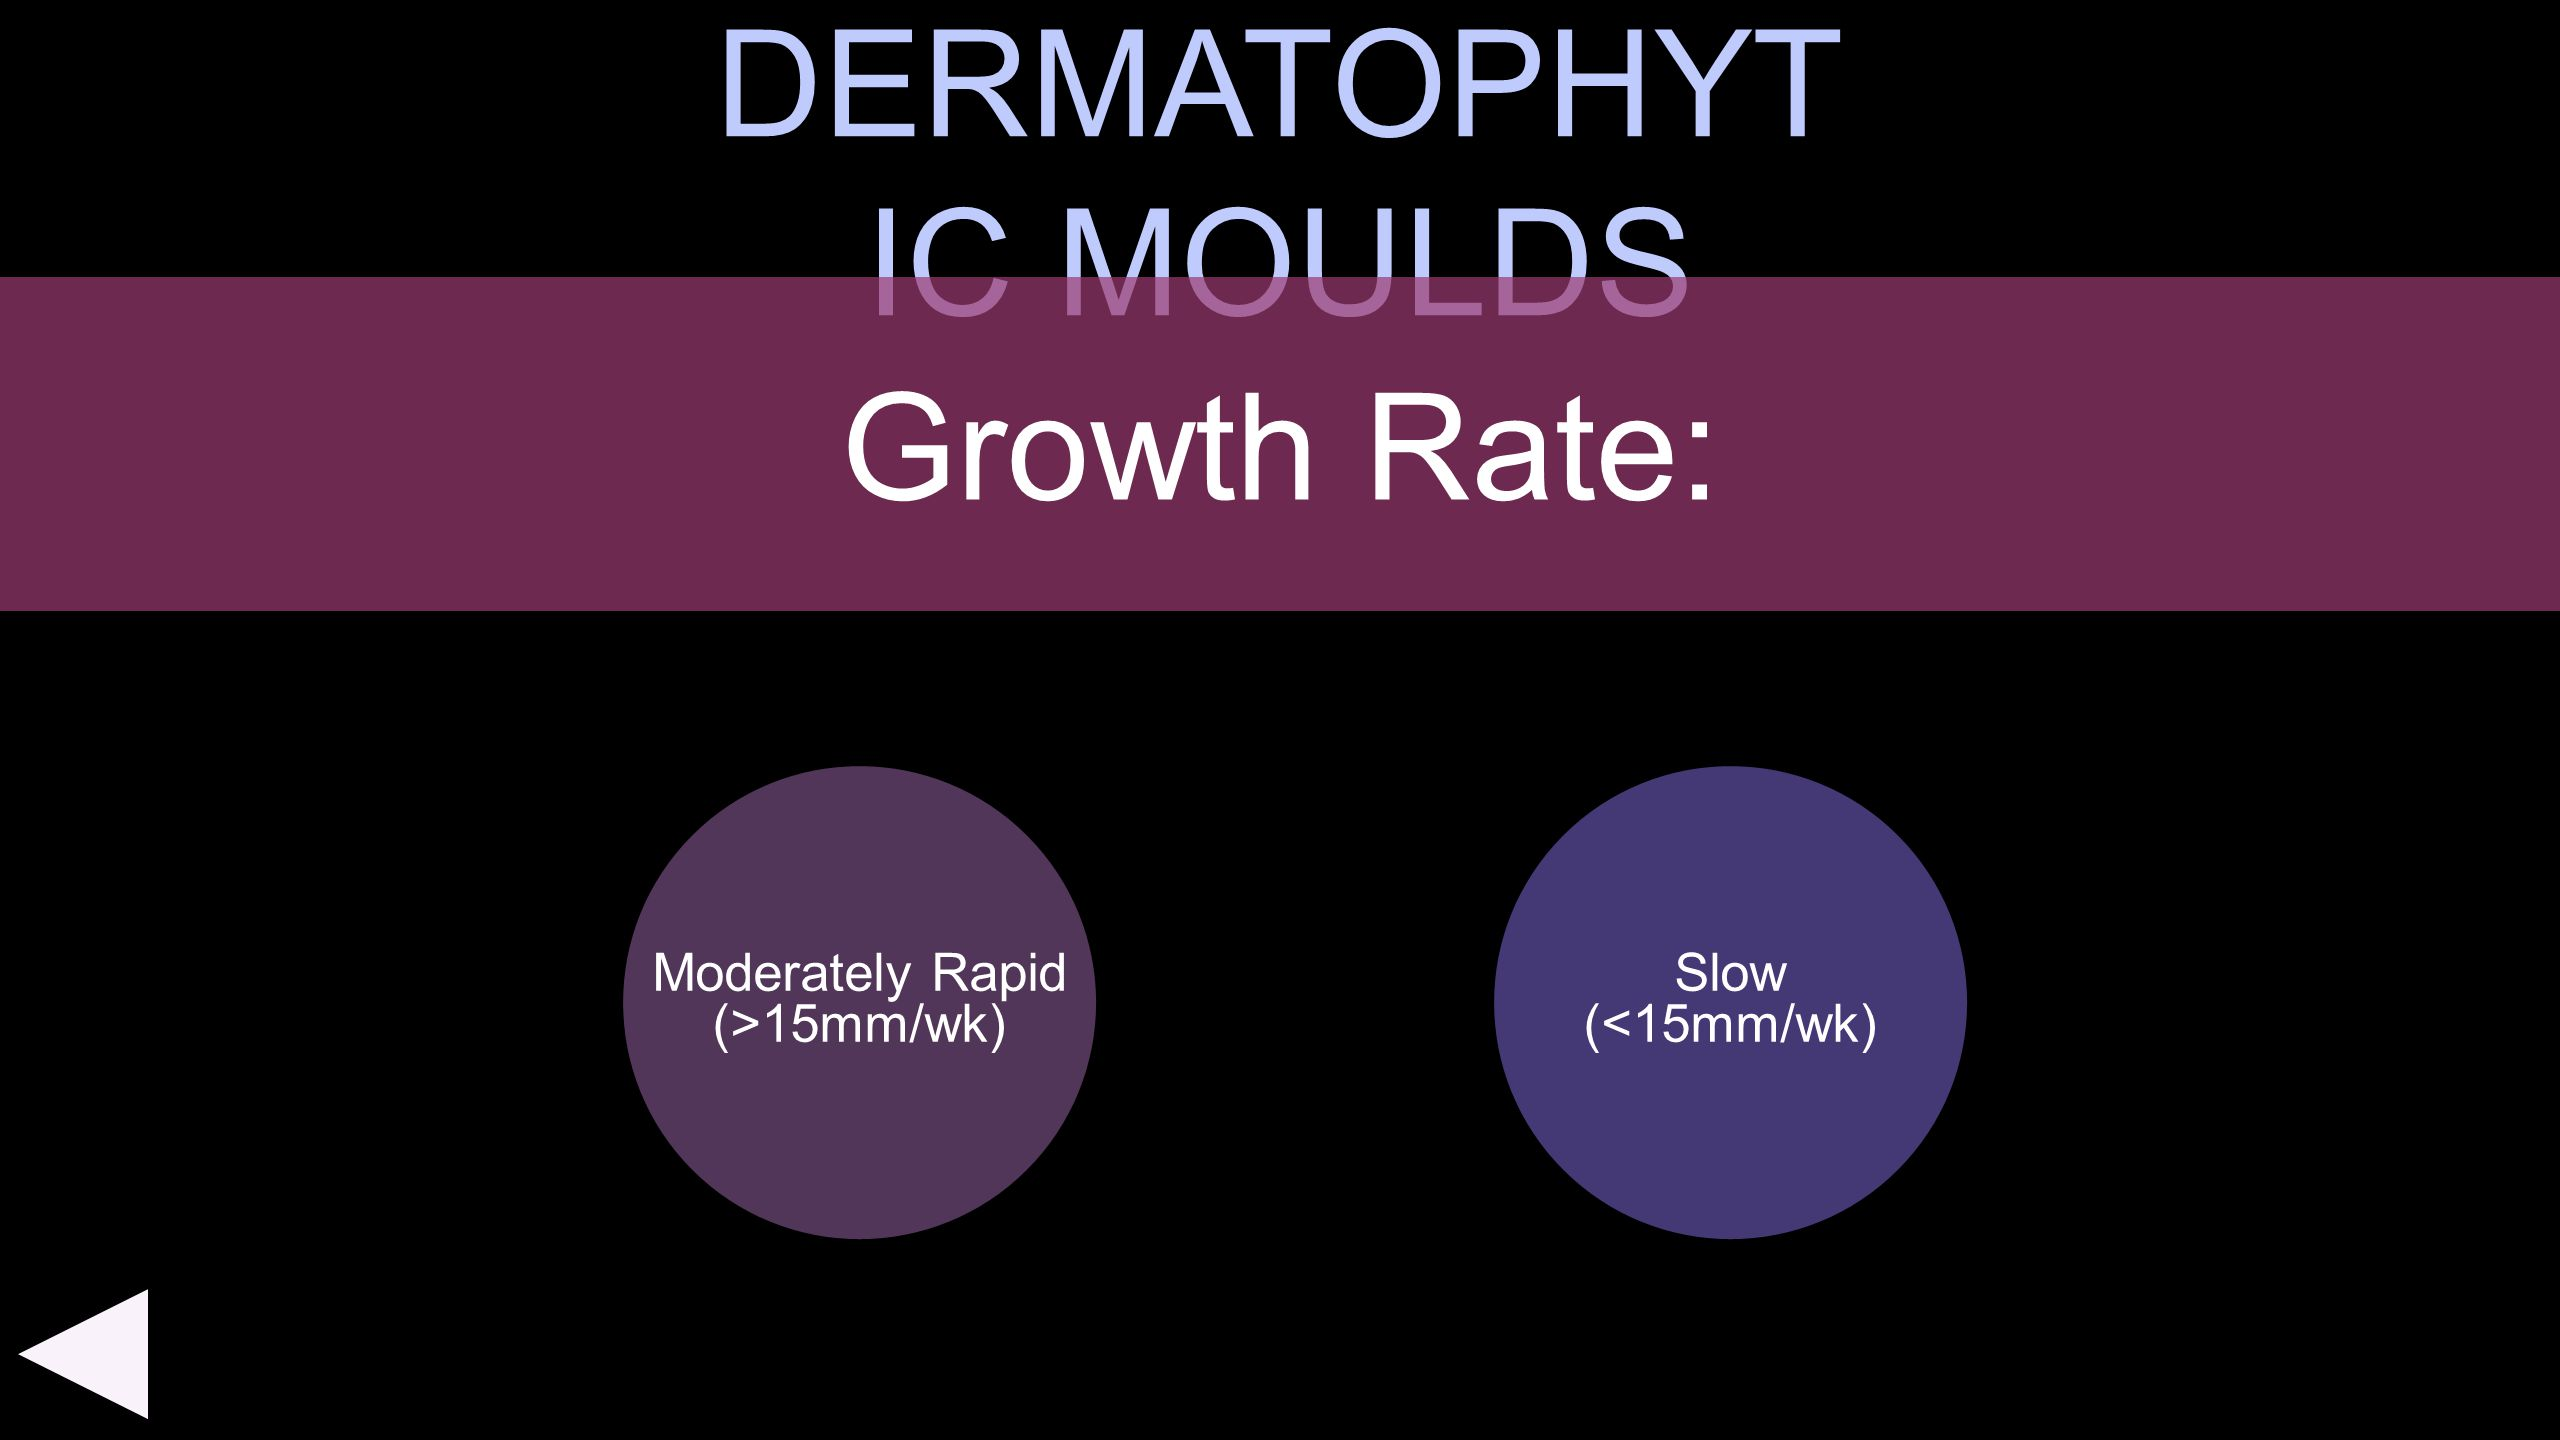 DERMATOPHYT IC MOULDS Moderately Rapid (>15mm/wk) Growth Rate: Slow (<15mm/wk)